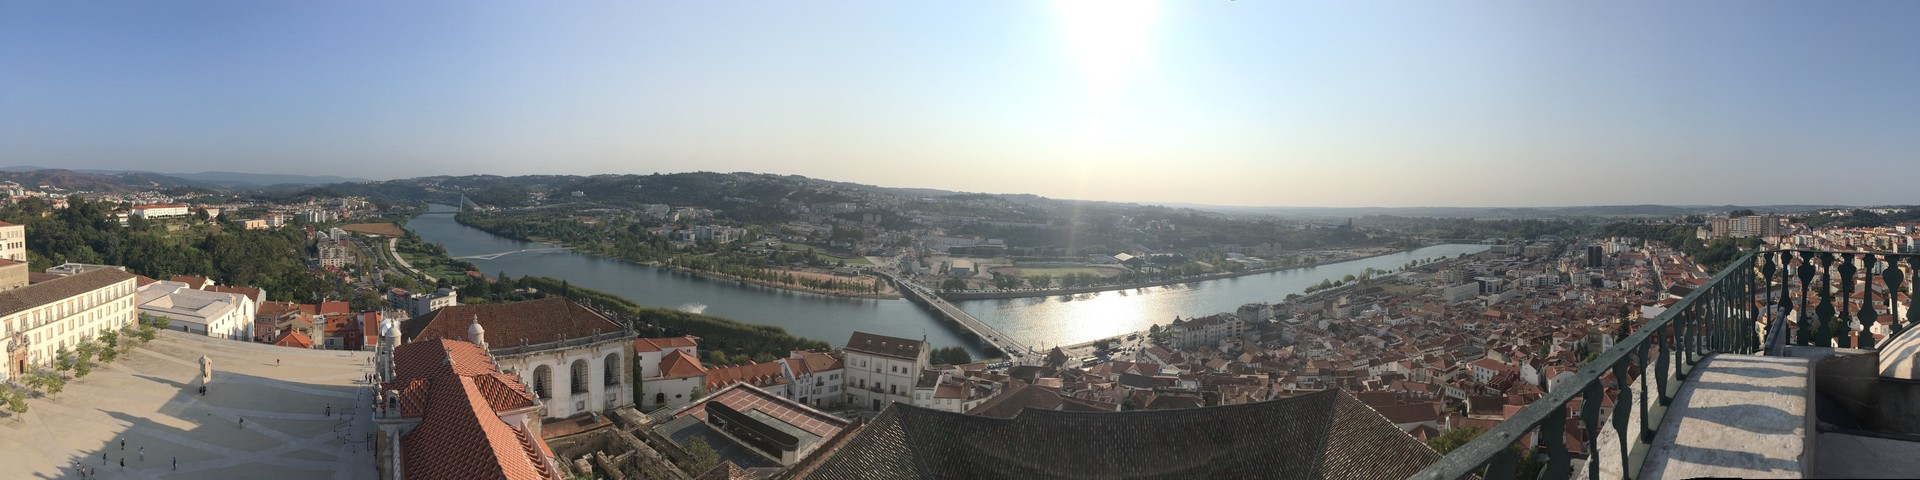 Best view in Coimbra